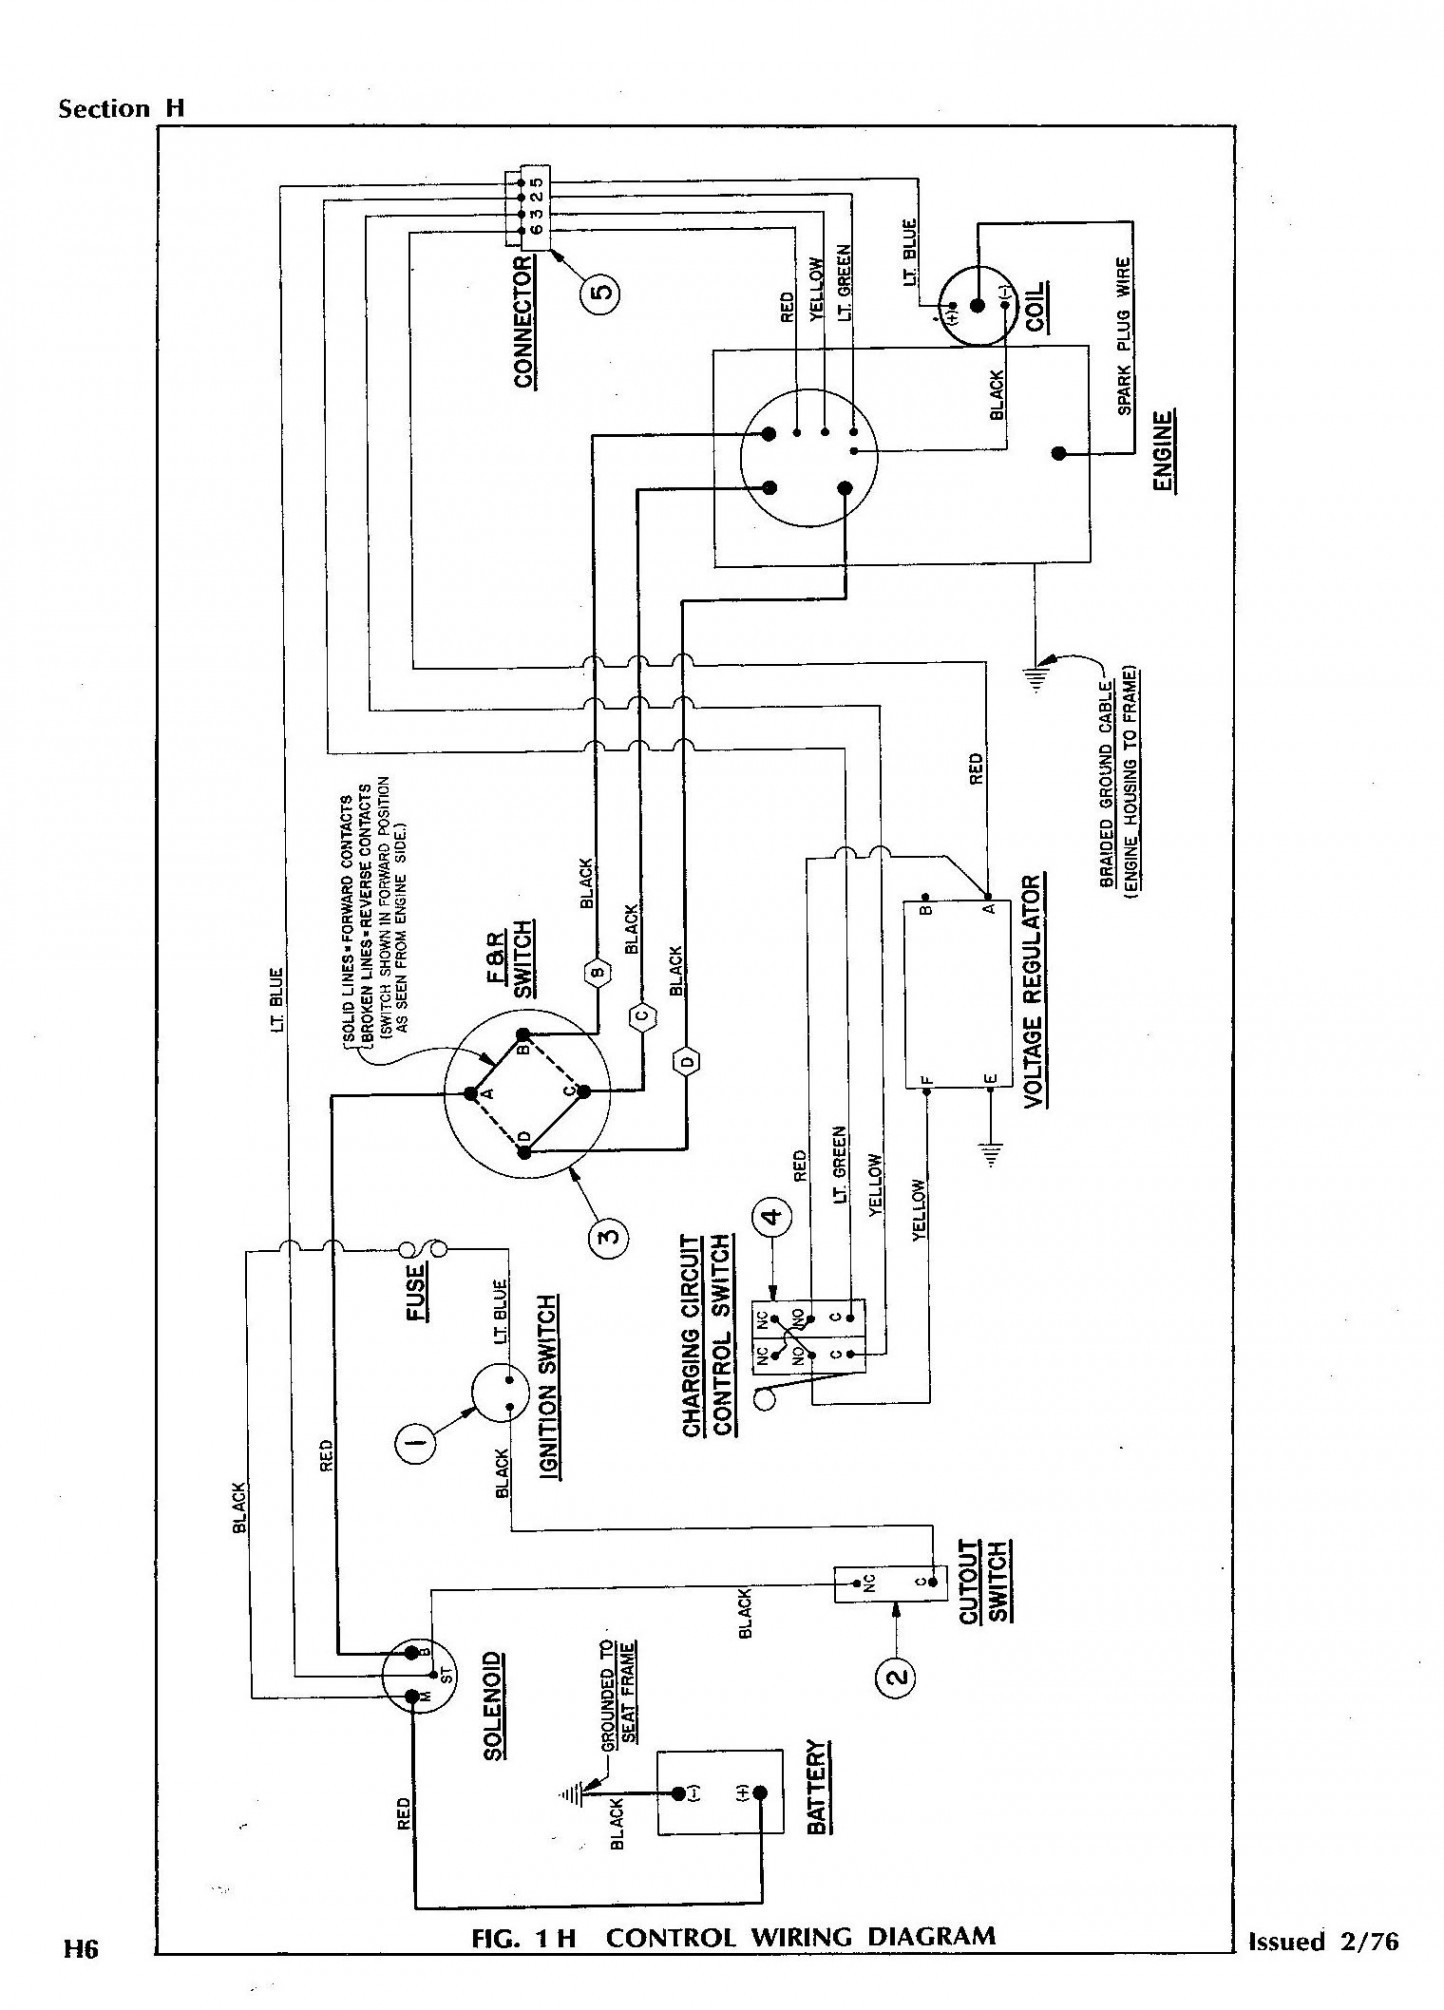 1996 Ezgo Gas Wiring Diagram - Wiring Diagrams Online Gas Golf Cart Wiring Diagram on